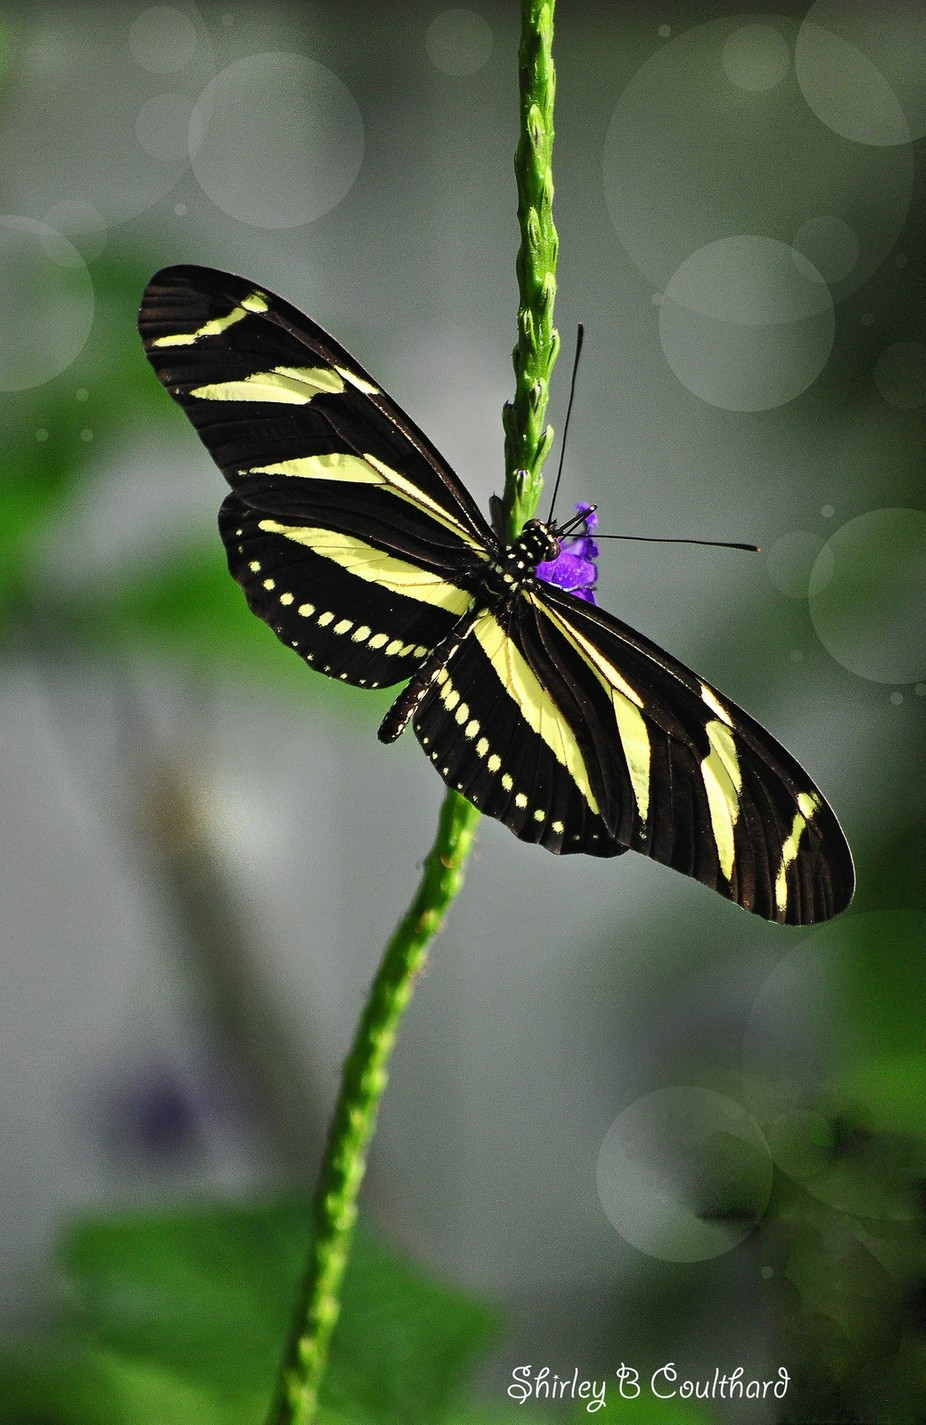 Zebra Longwing butterfly by shirleybcoulthard - Freshmen 2016 Photo Contest Vol 2